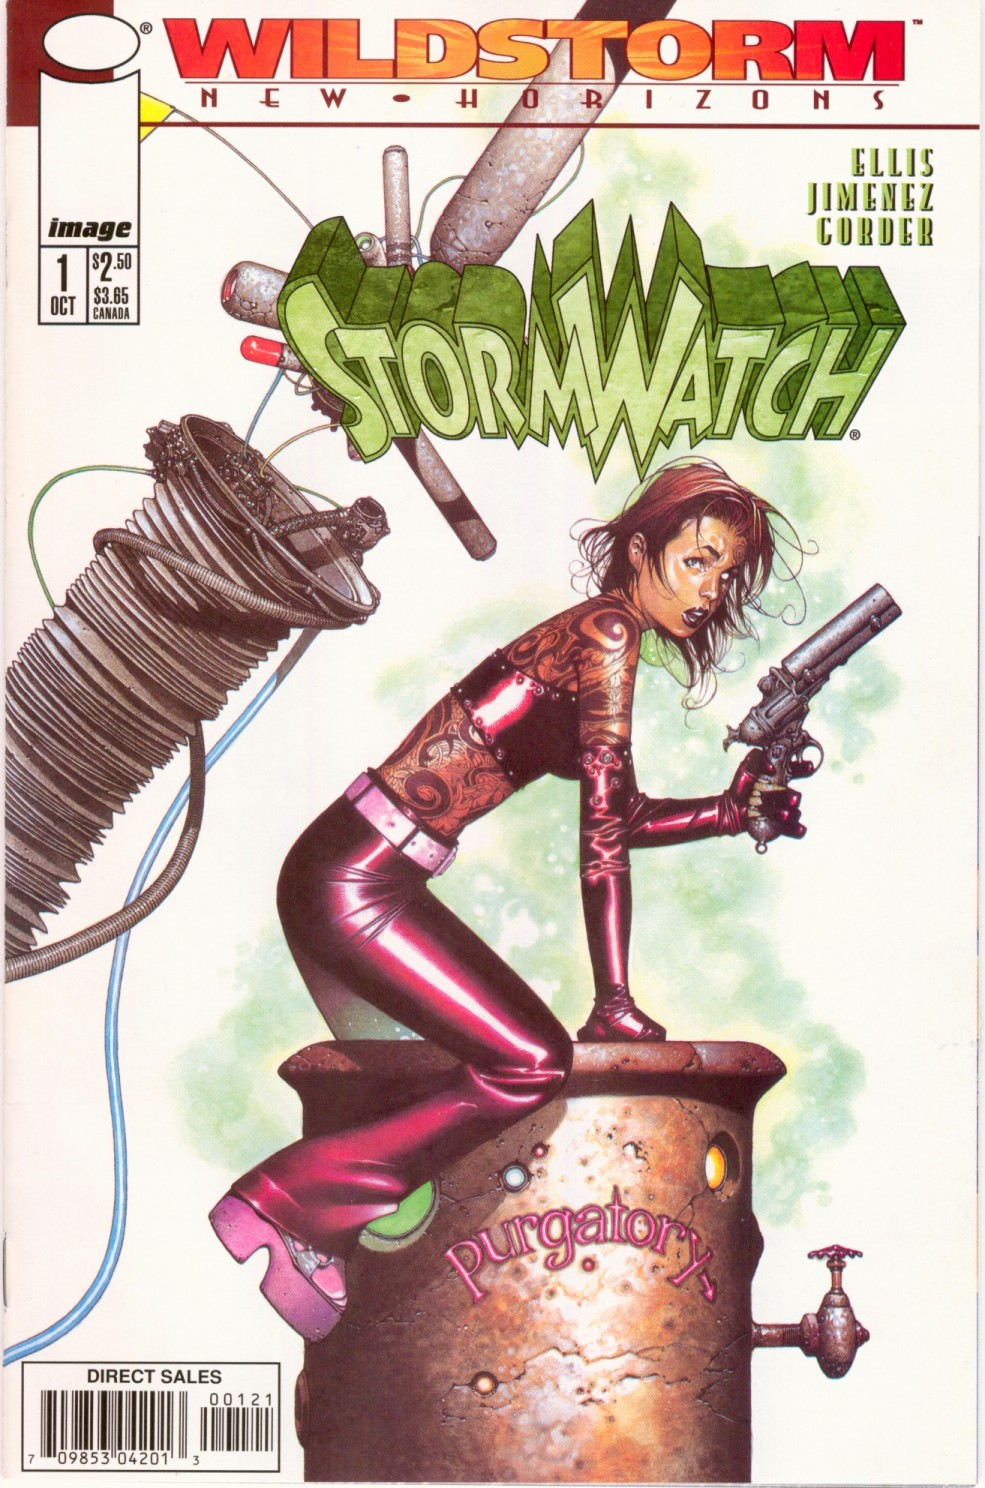 HIgh Res cover From Stormwatch #1 Vol 2